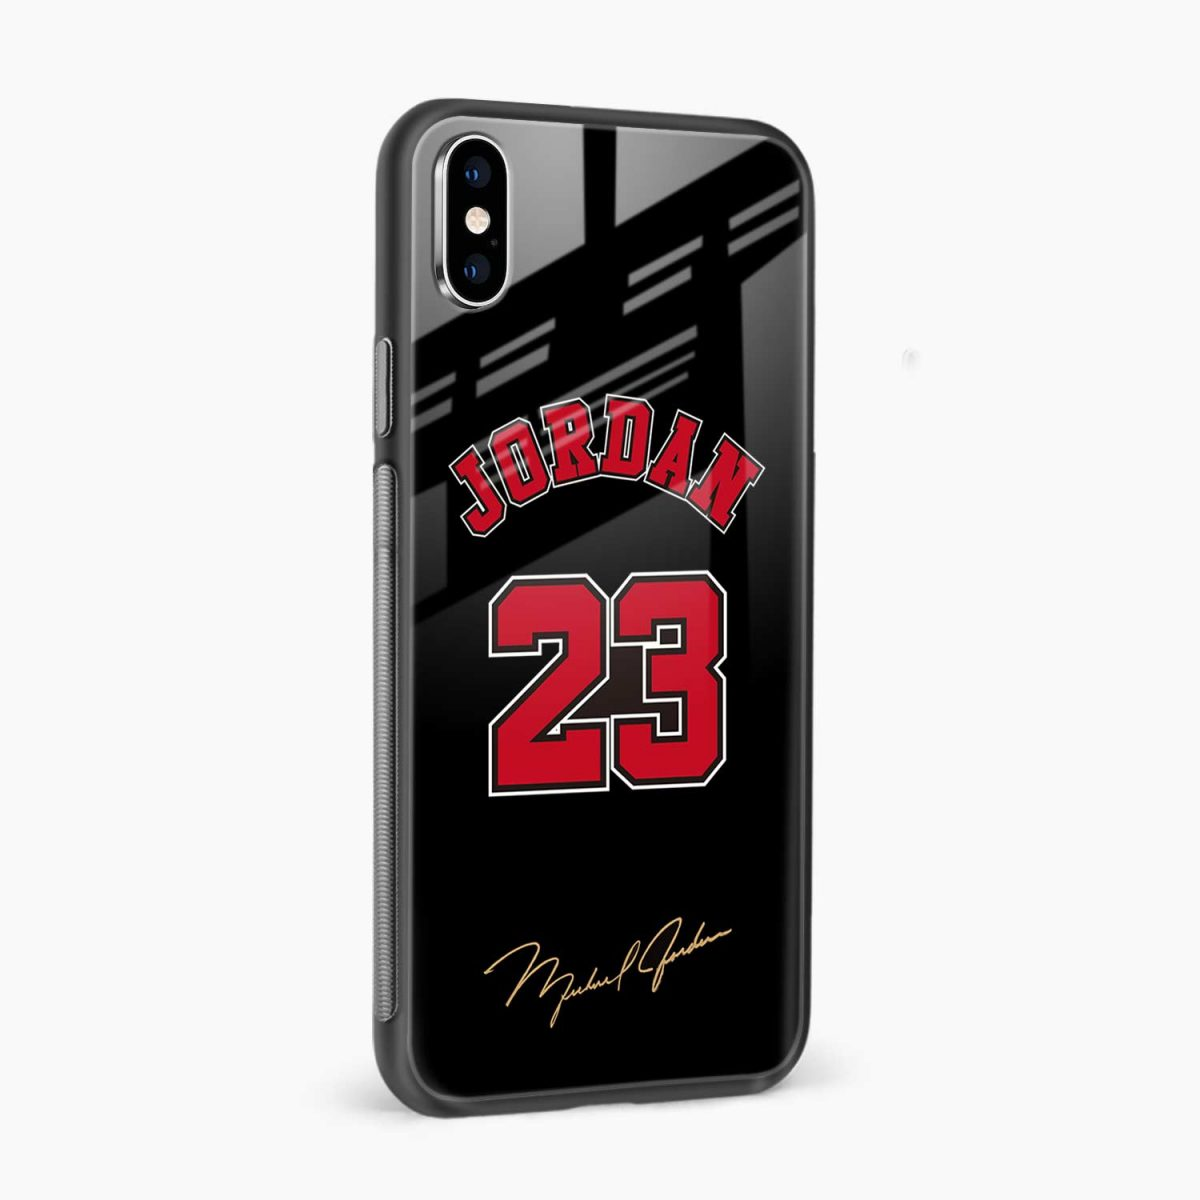 jordan 23 side view apple iphone x xs max back cover